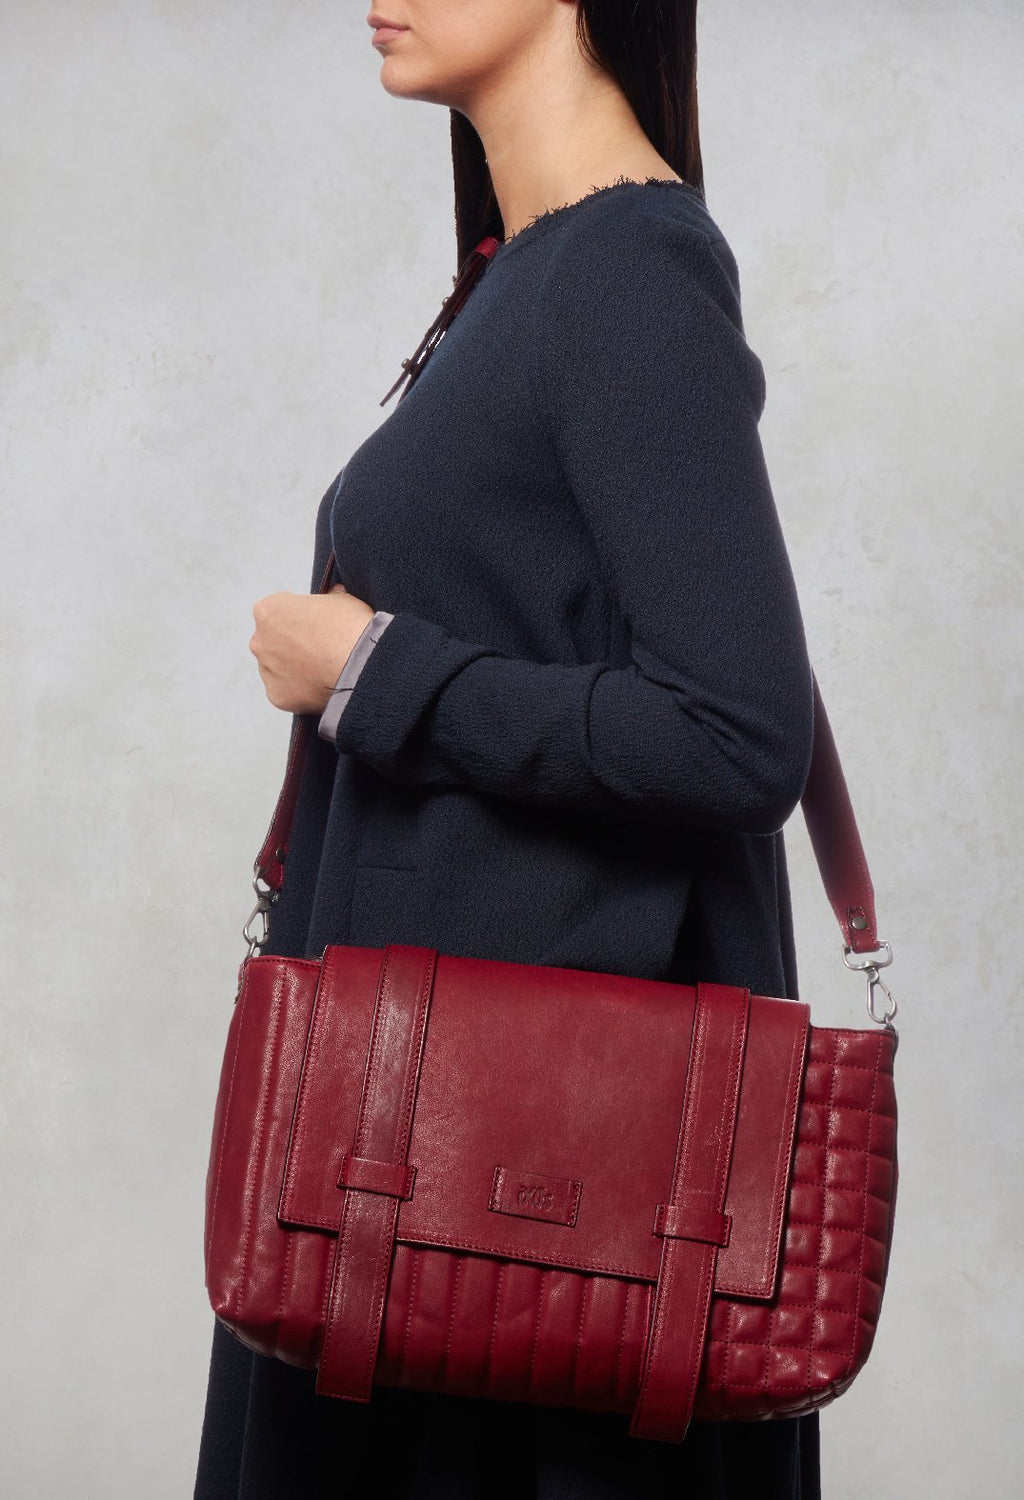 Leather Messenger Bag in Bordeaux